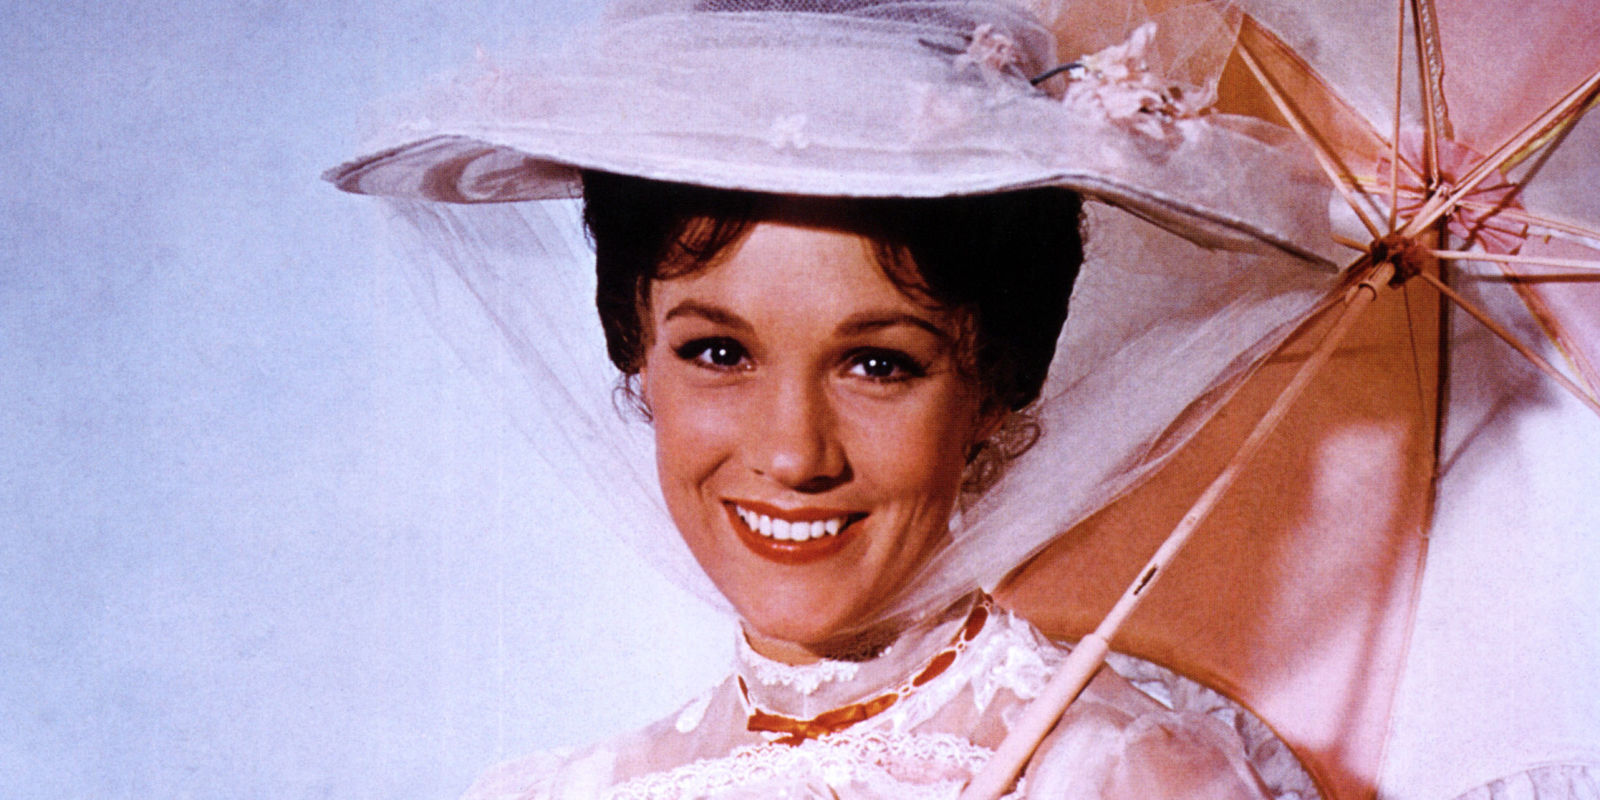 Jane from the movie Mary Poppins, goodbye became a producer 07/31/2011 19